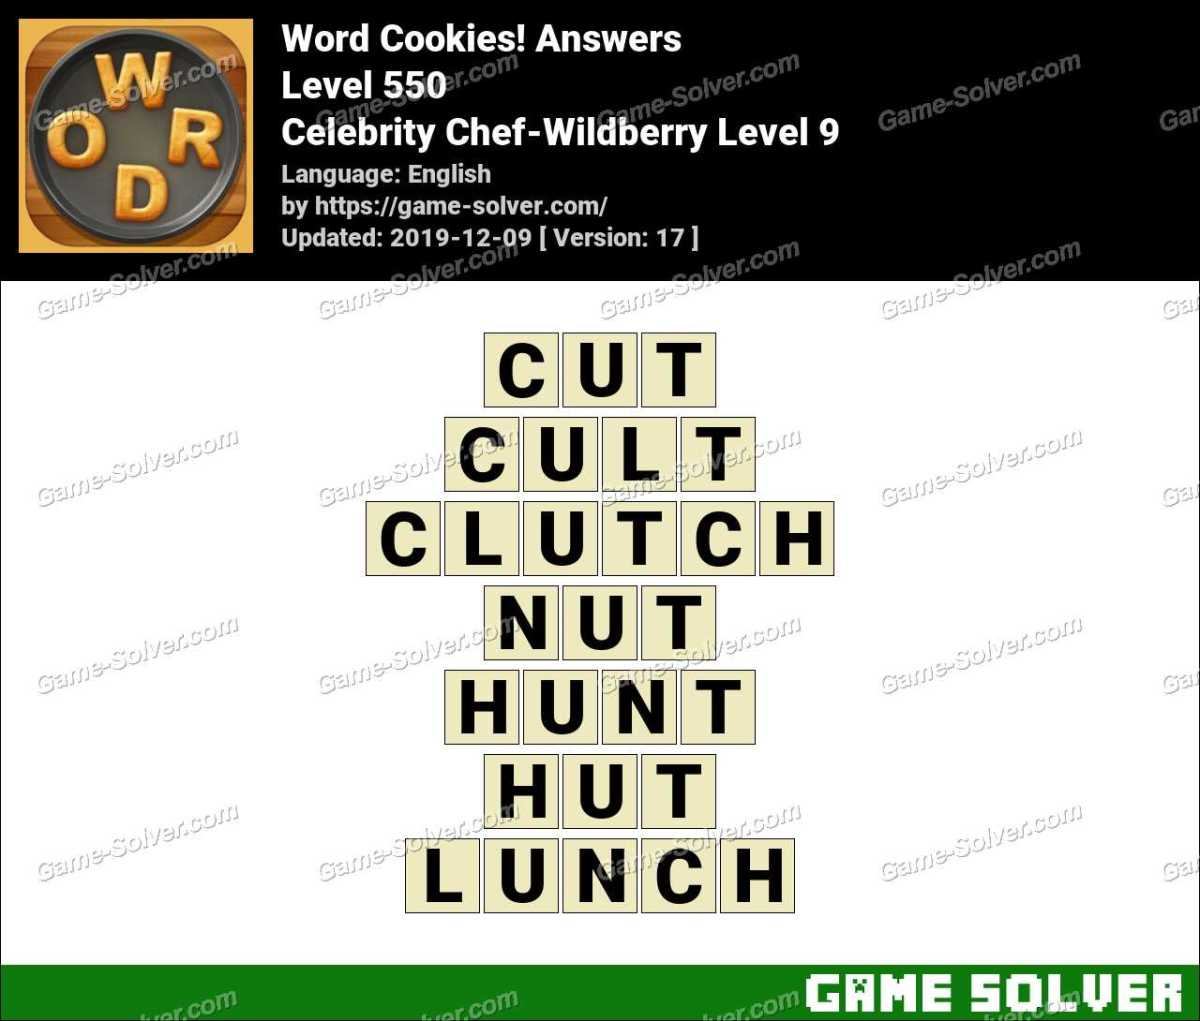 Word Cookies Celebrity Chef-Wildberry Level 9 Answers